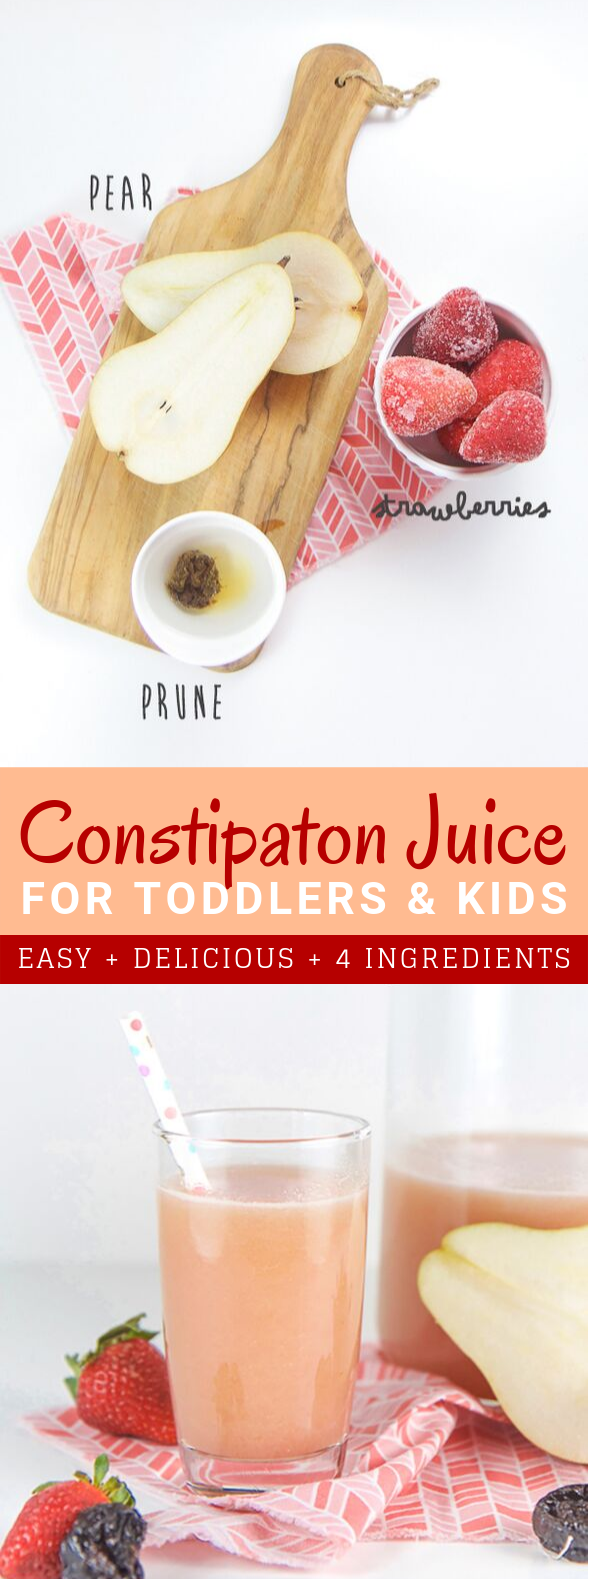 HOMEMADE CONSTIPATION JUICE FOR TODDLERS + KIDS (THAT THEY WILL LOVE TO DRINK!) #drinks #kidfriendly